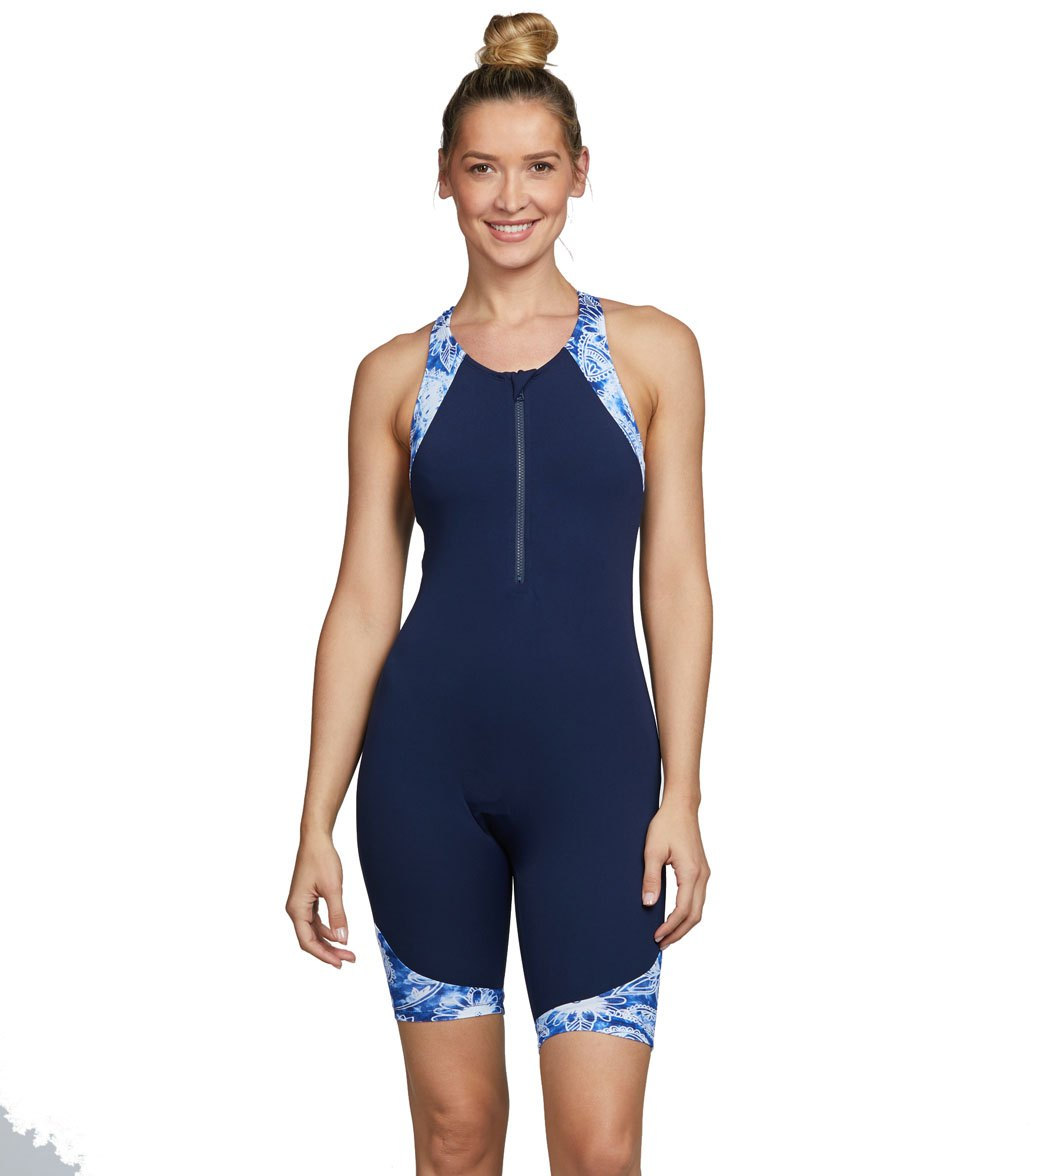 aadf276ed84 Dolfin Women's Aquashape Paisely Racerback Zip Front Chlorine Resistant  Unitard at SwimOutlet.com - Free Shipping